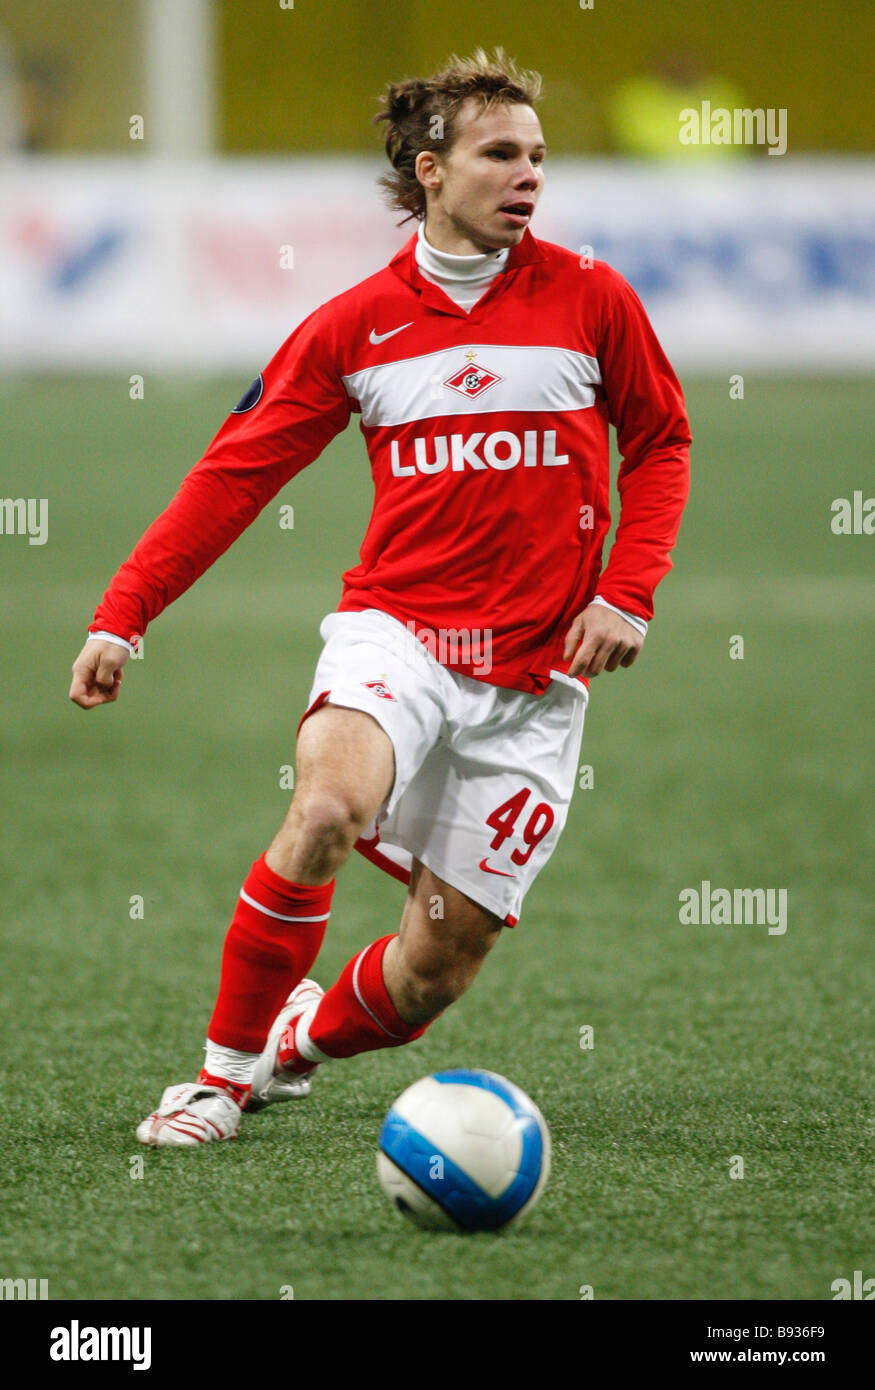 Roman Shishkin of Spartak Moscow plays against Bayer Leverkusen Germany Spartak Moscow won this UEFA Cup match Group - Stock Image